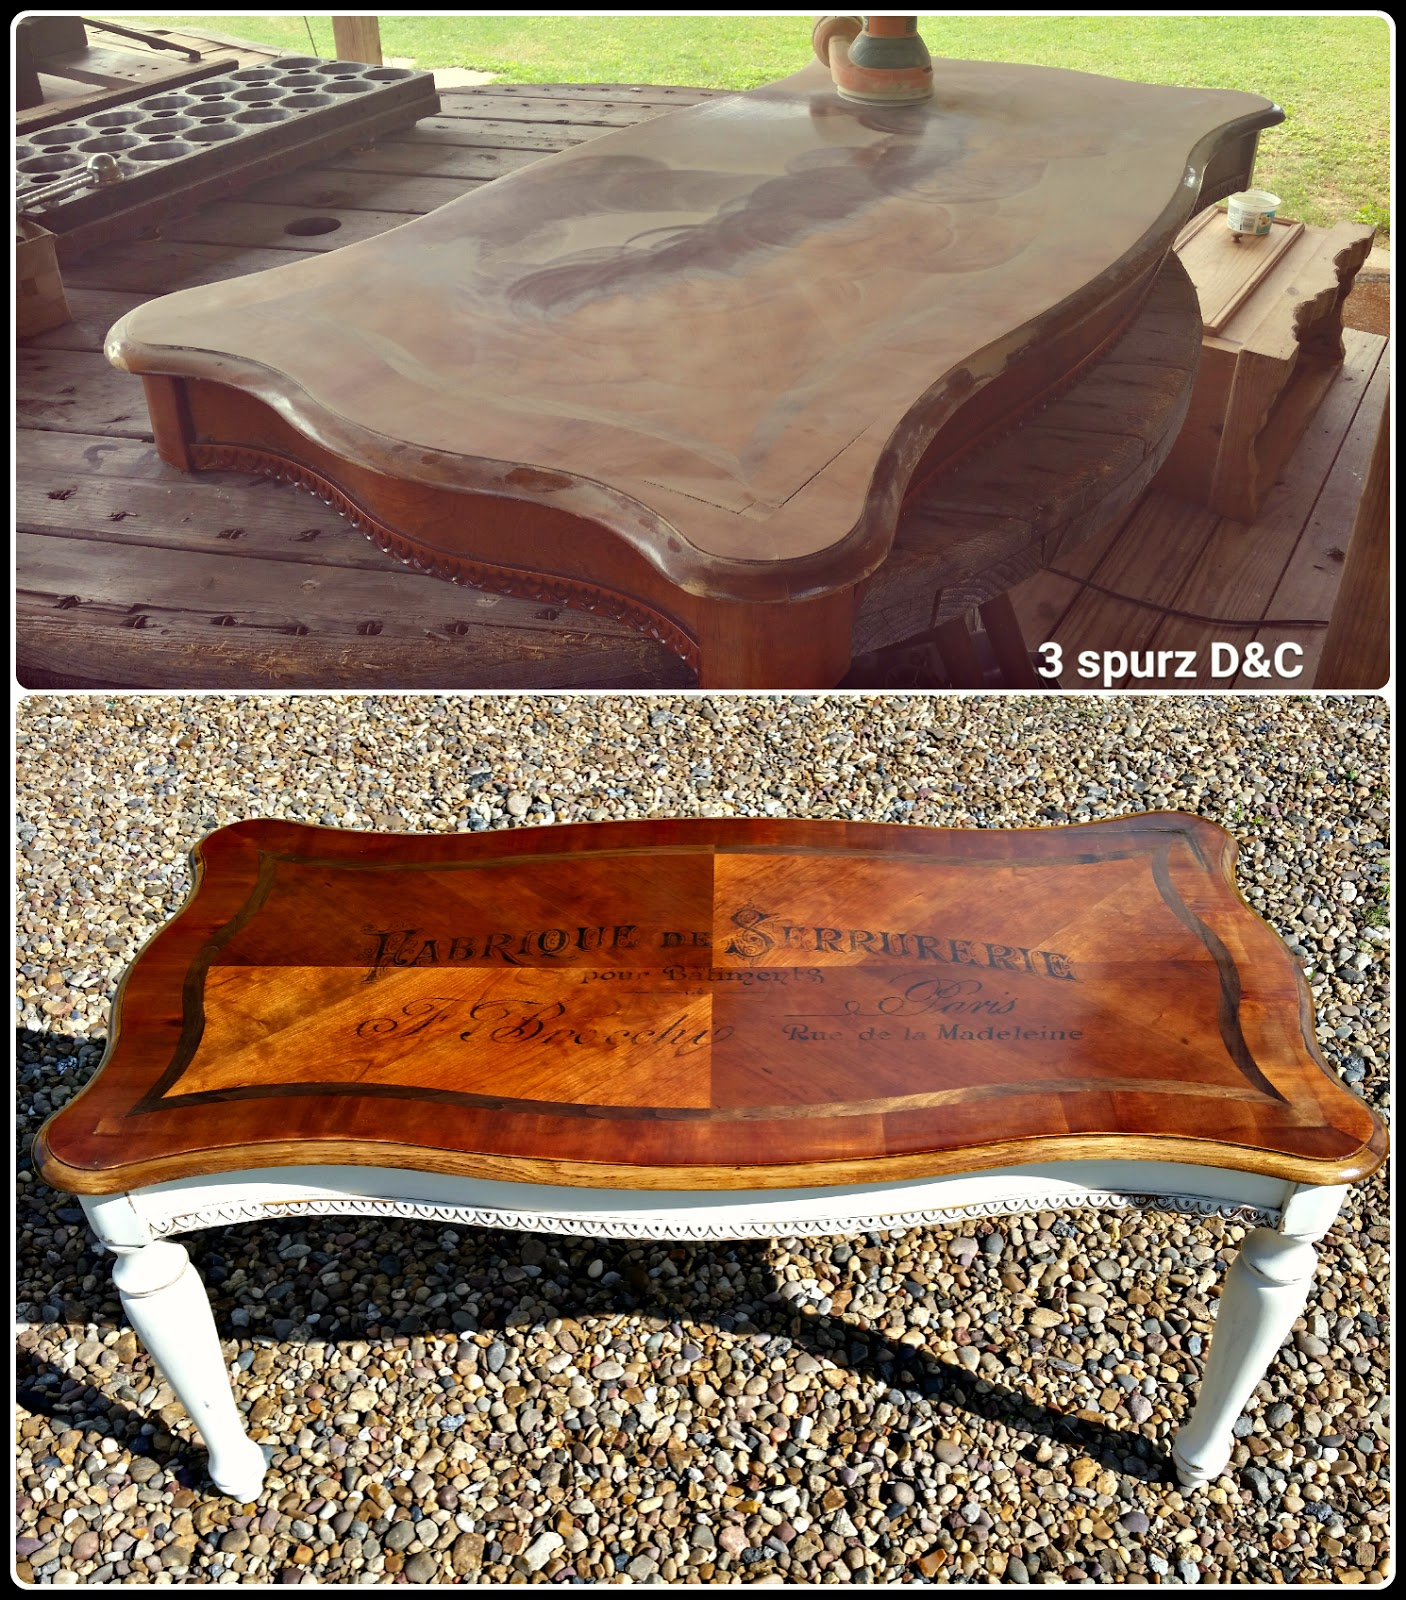 3 Spurz Dandc Repurposed Refurbished Creations Refurbished Coffee Table With Heat Transfer Image